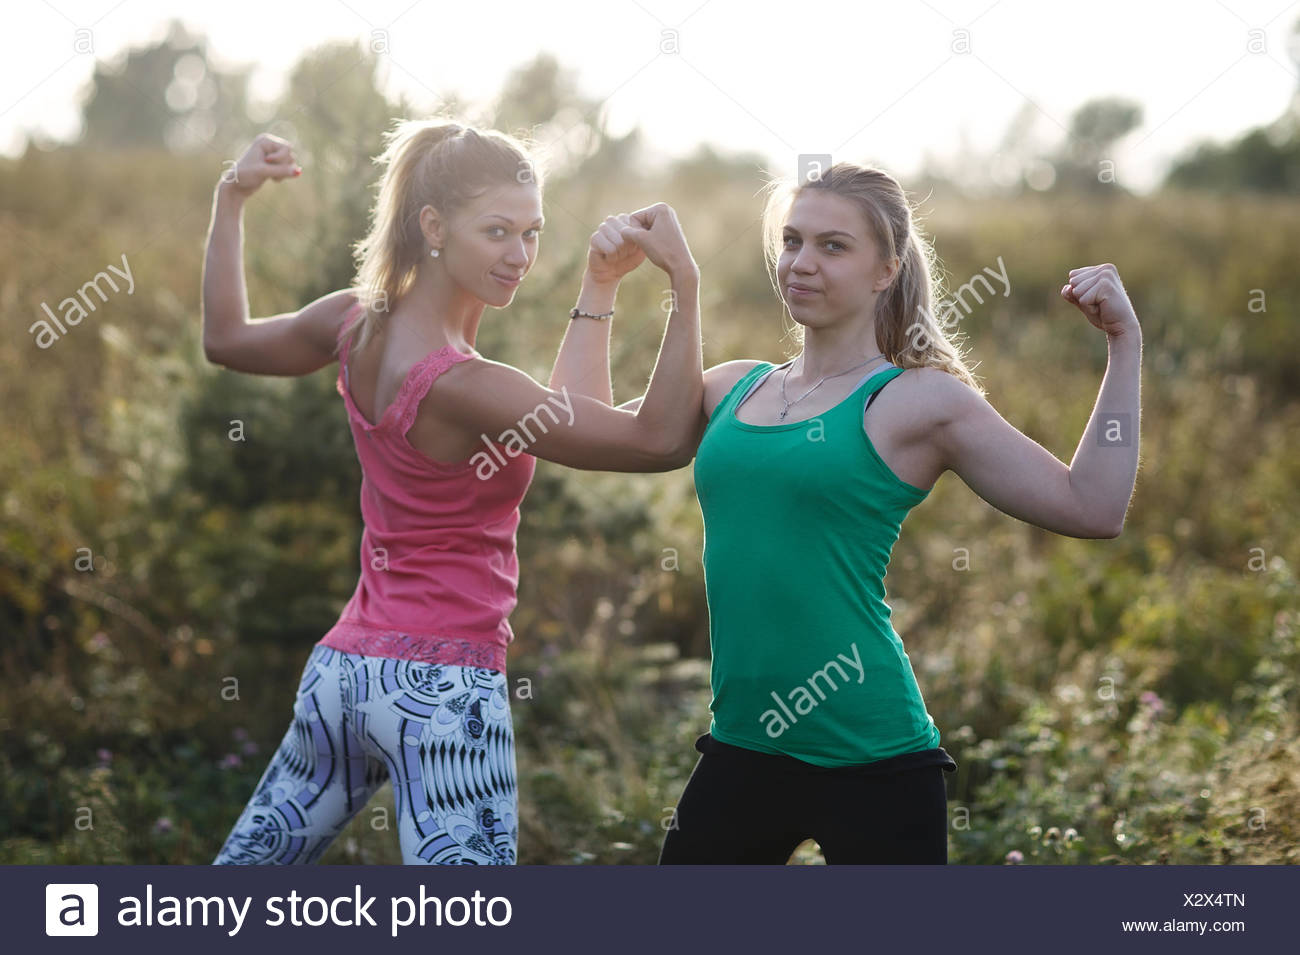 Two athletic girls flexing their arm muscles - Stock Image